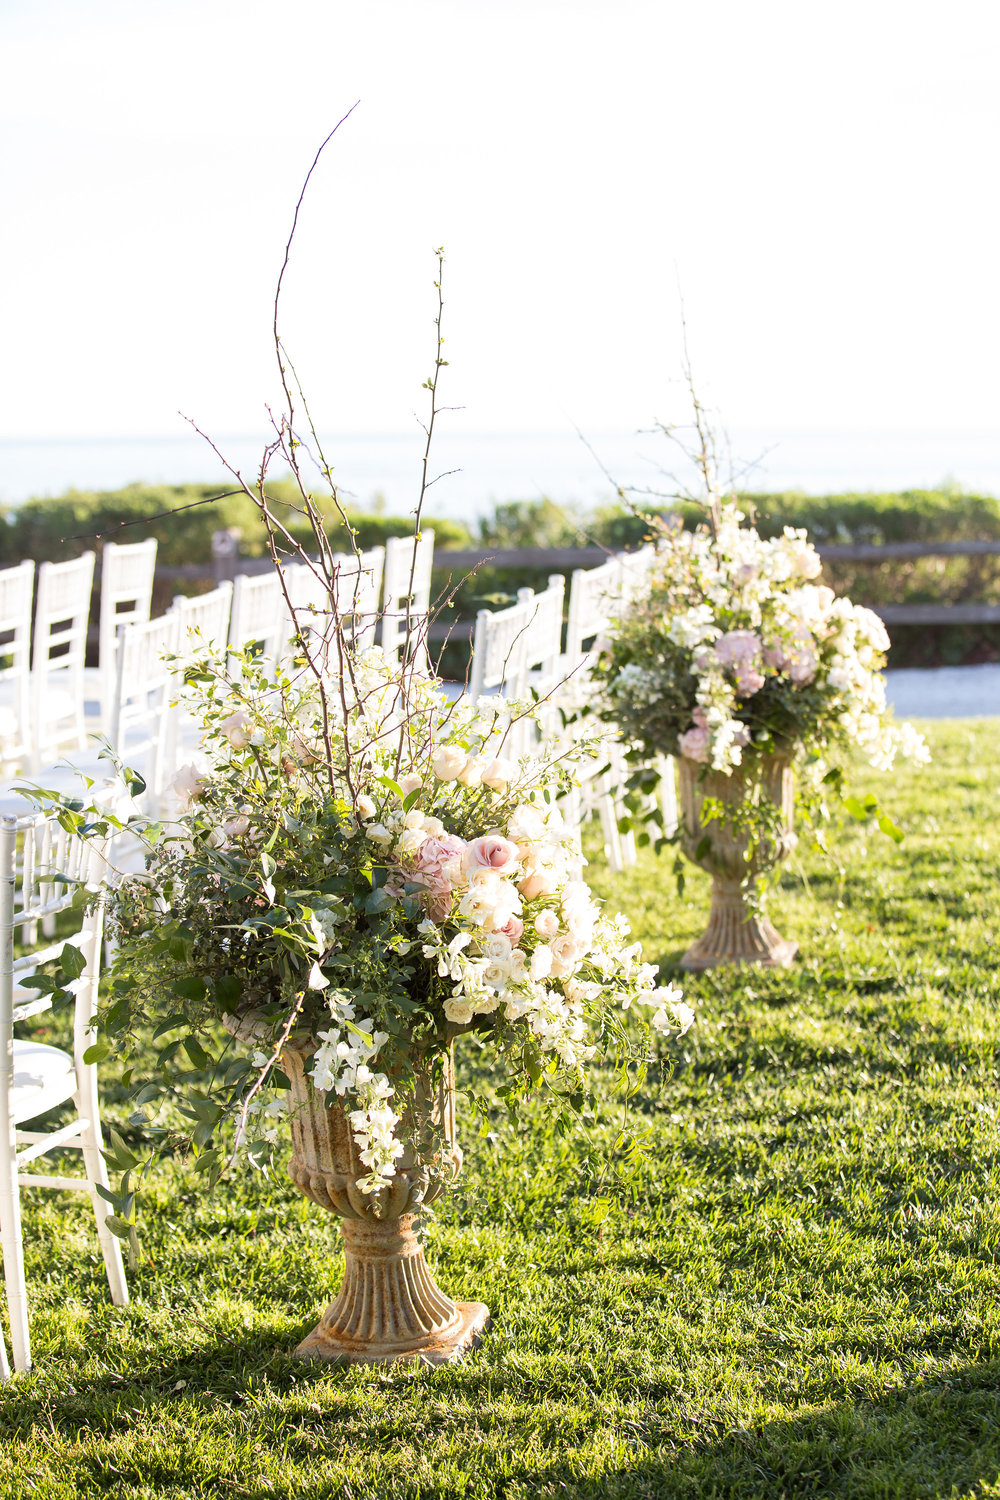 santabarbarawedding.com | photo: Melissa Musgrove | Elegant Bacara Wedding with Wild Greenery Ceremony Arbor